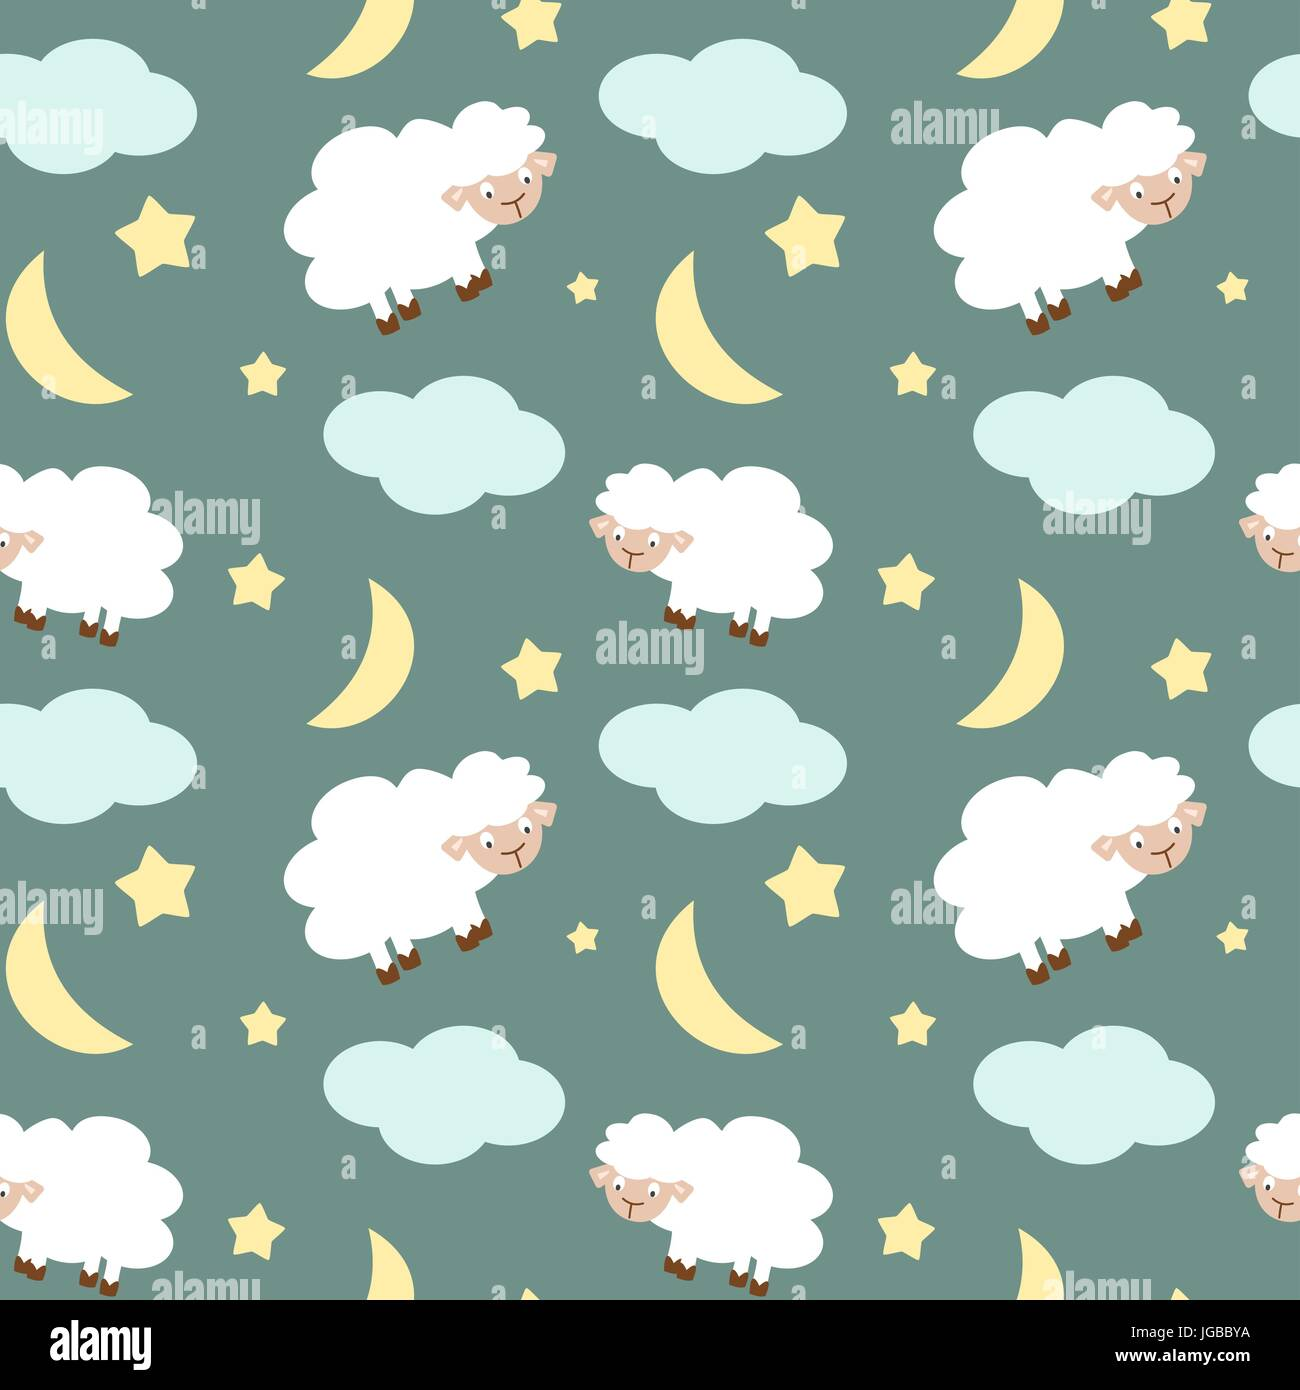 Cute Sheep In The Night Sky With Stars Moon And Clouds Seamless Vector Pattern Background Illustration